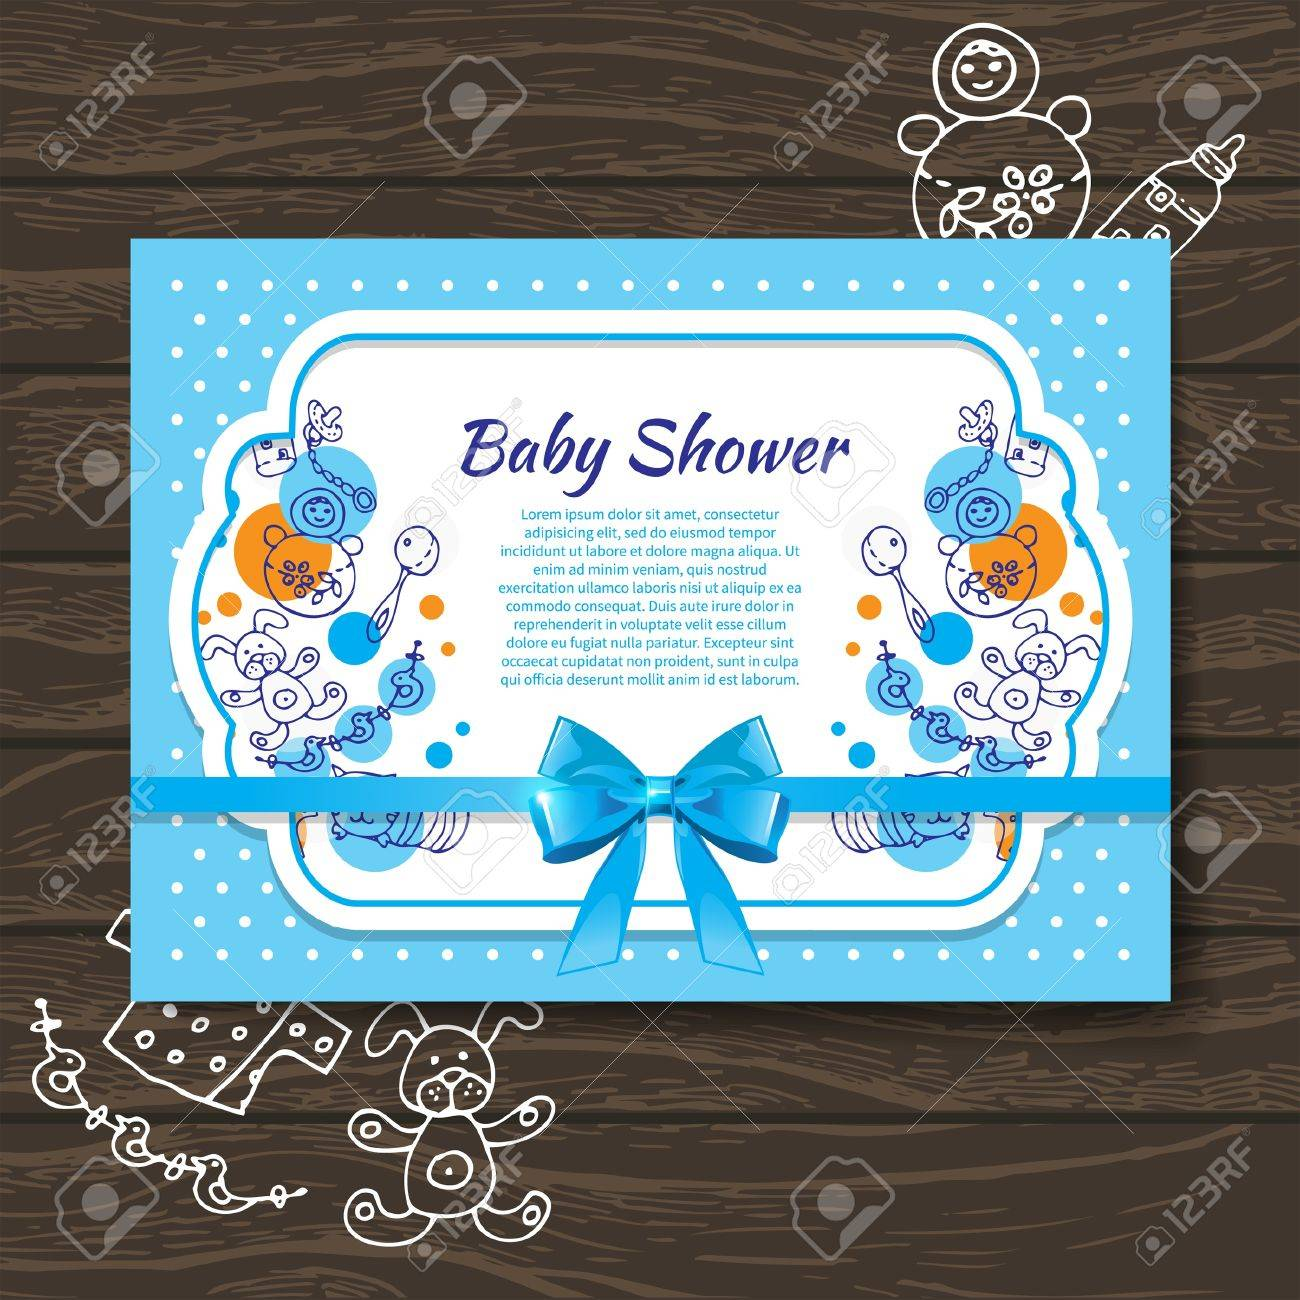 Sweet baby shower invitation with doodle baby toys royalty free sweet baby shower invitation with doodle baby toys stock vector 20913321 filmwisefo